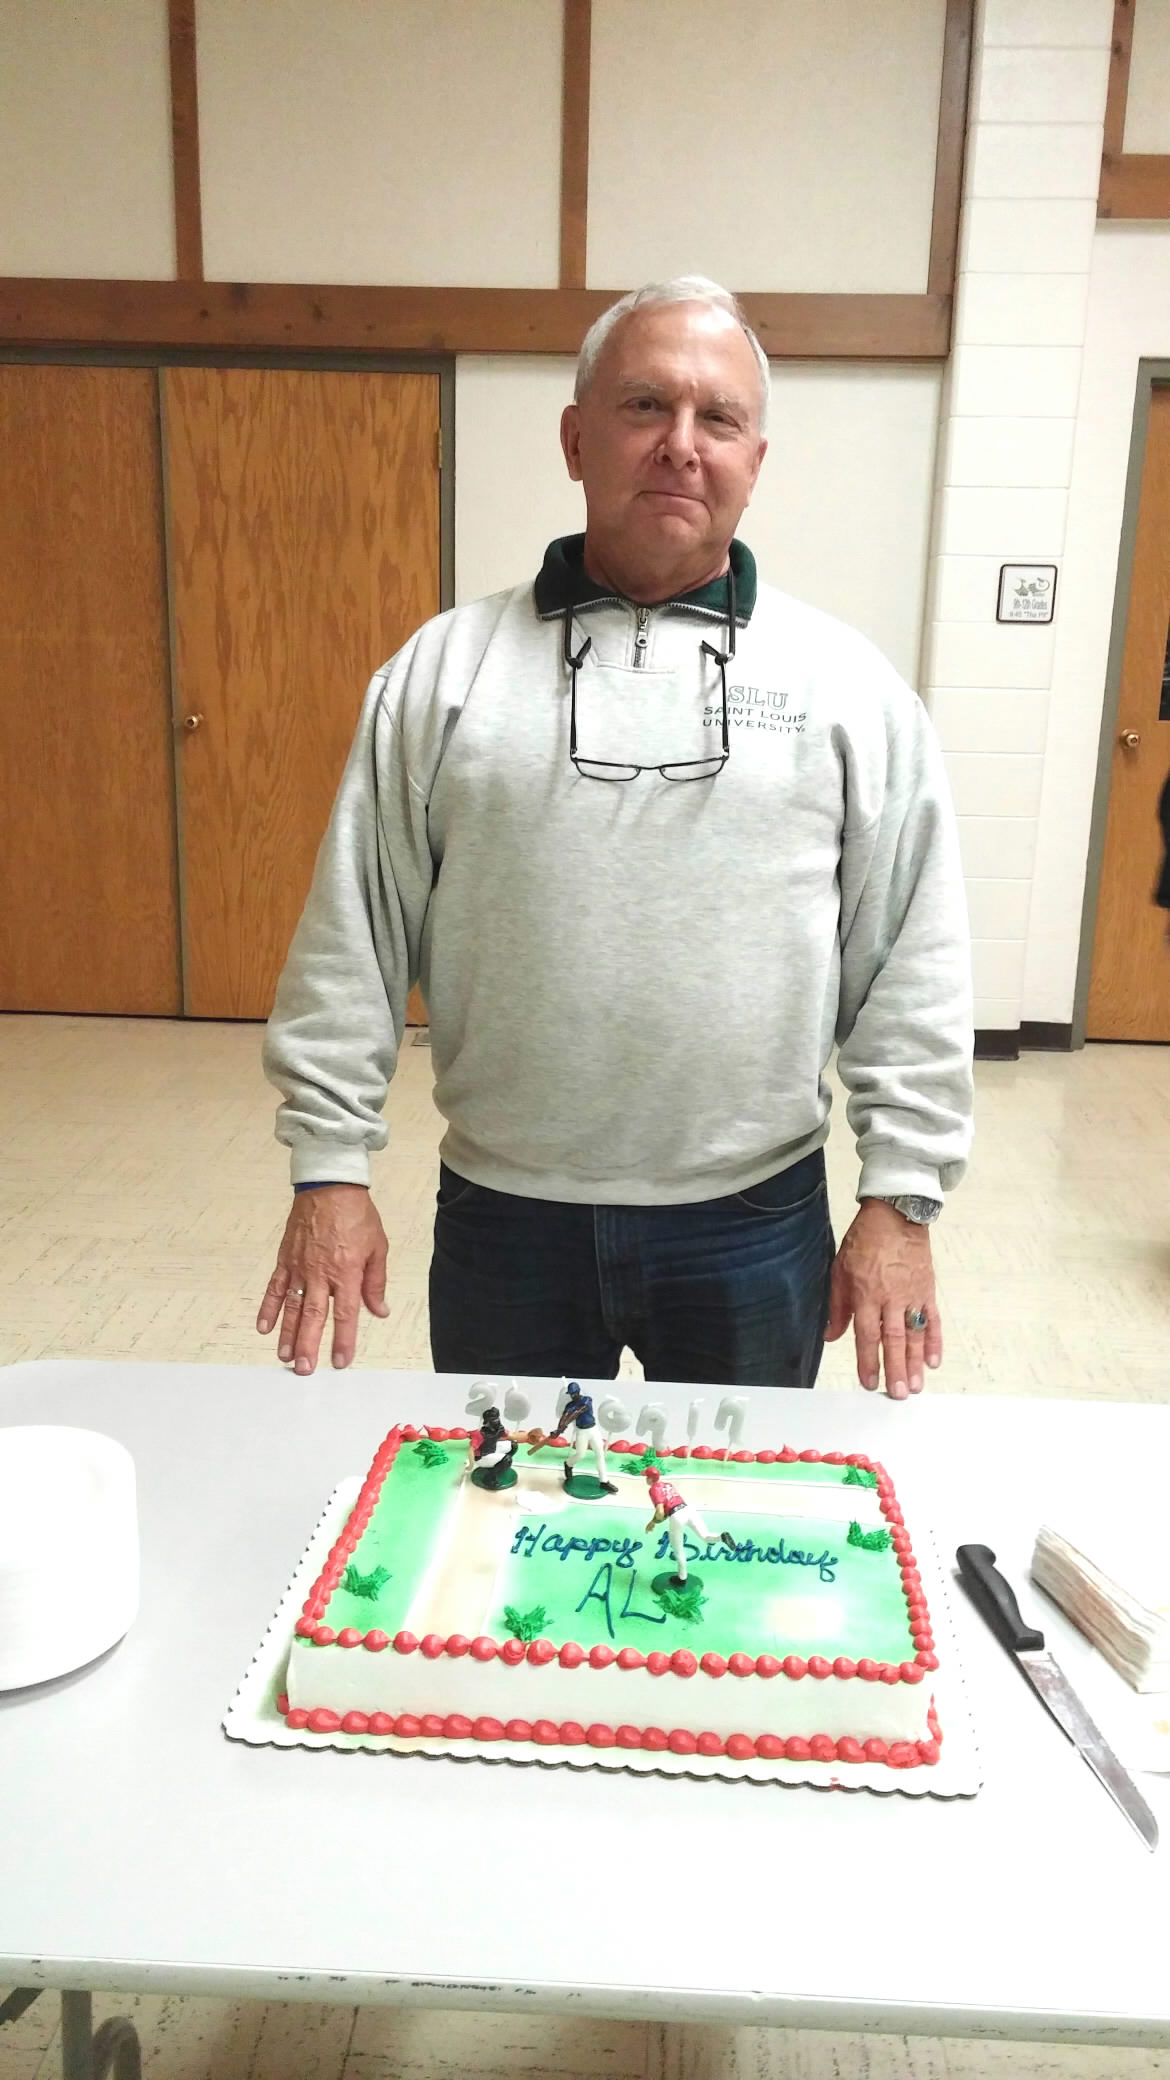 Al Burke, WB9SSE poses with the birthday cake he was presented during the Nov. 2015 FWRC general meeting